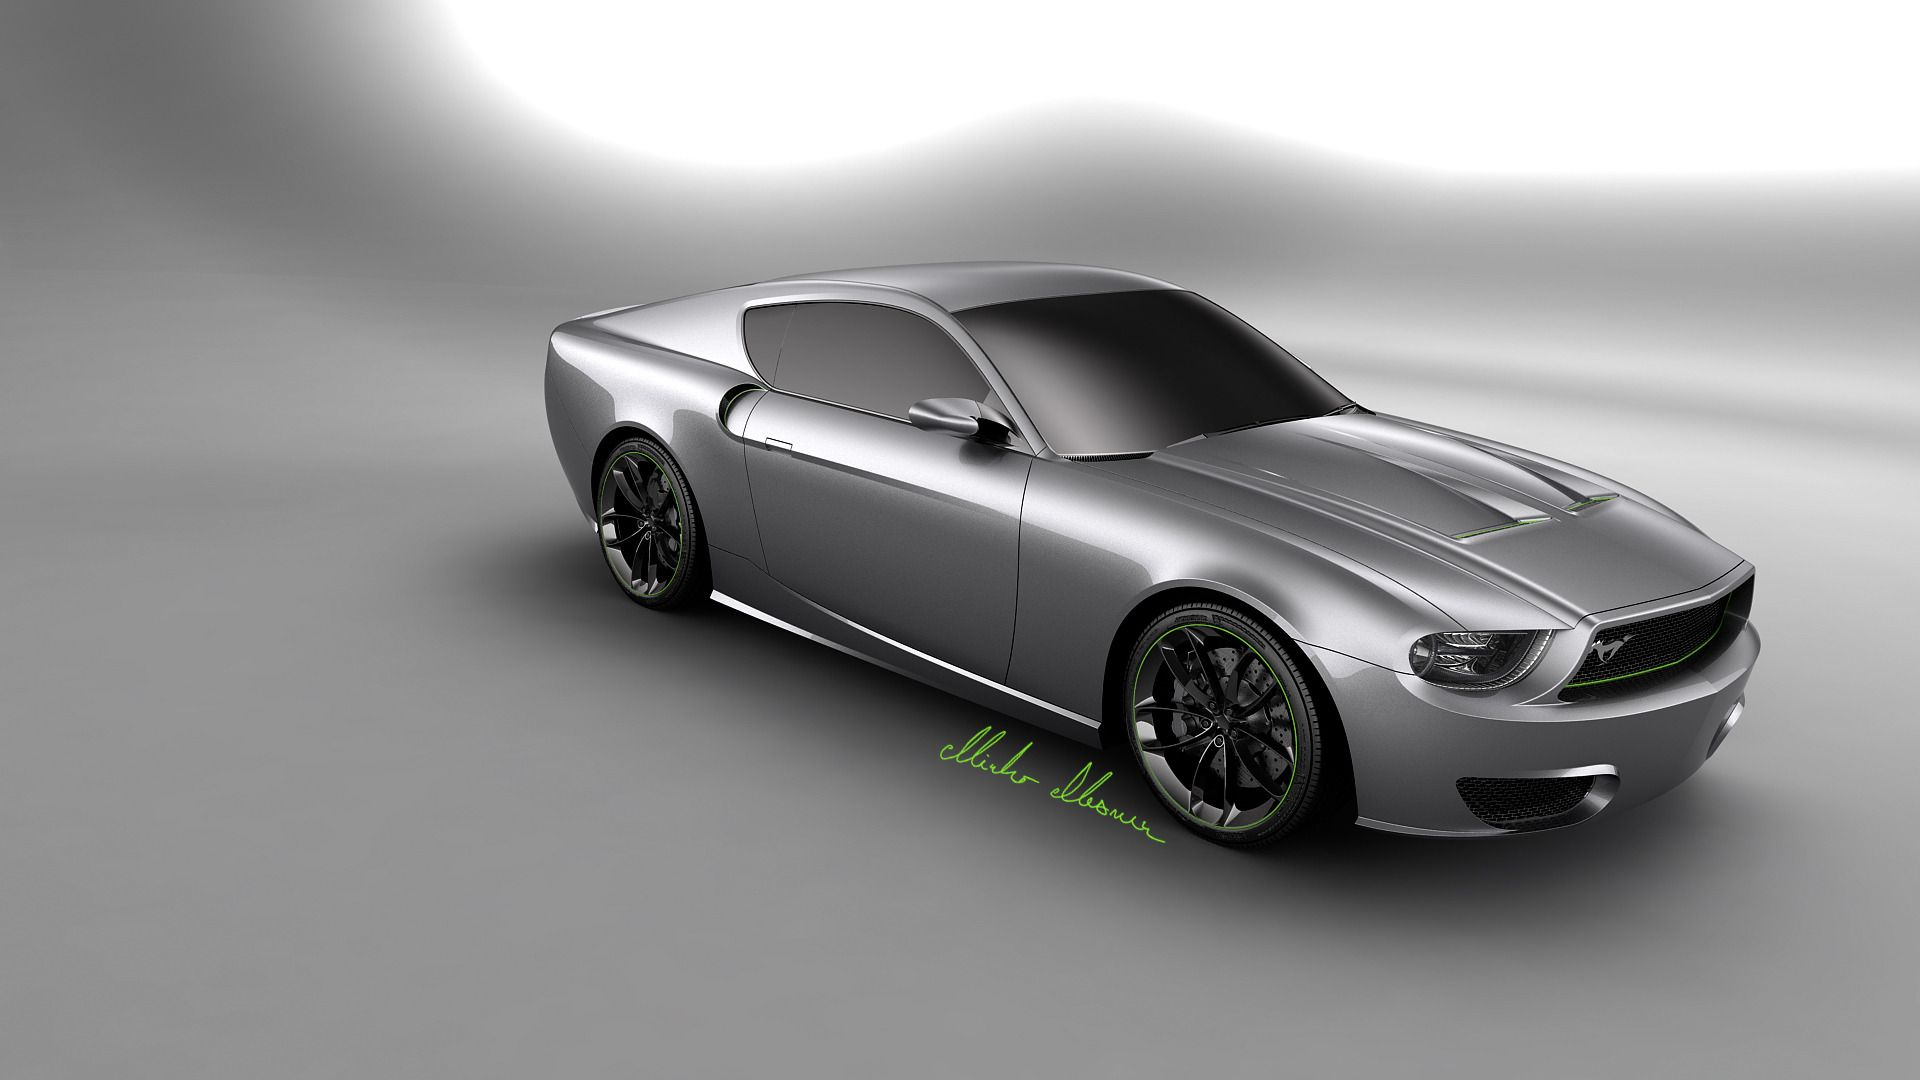 Which 2015 ford mustang concept renderings circling the web gets your vote